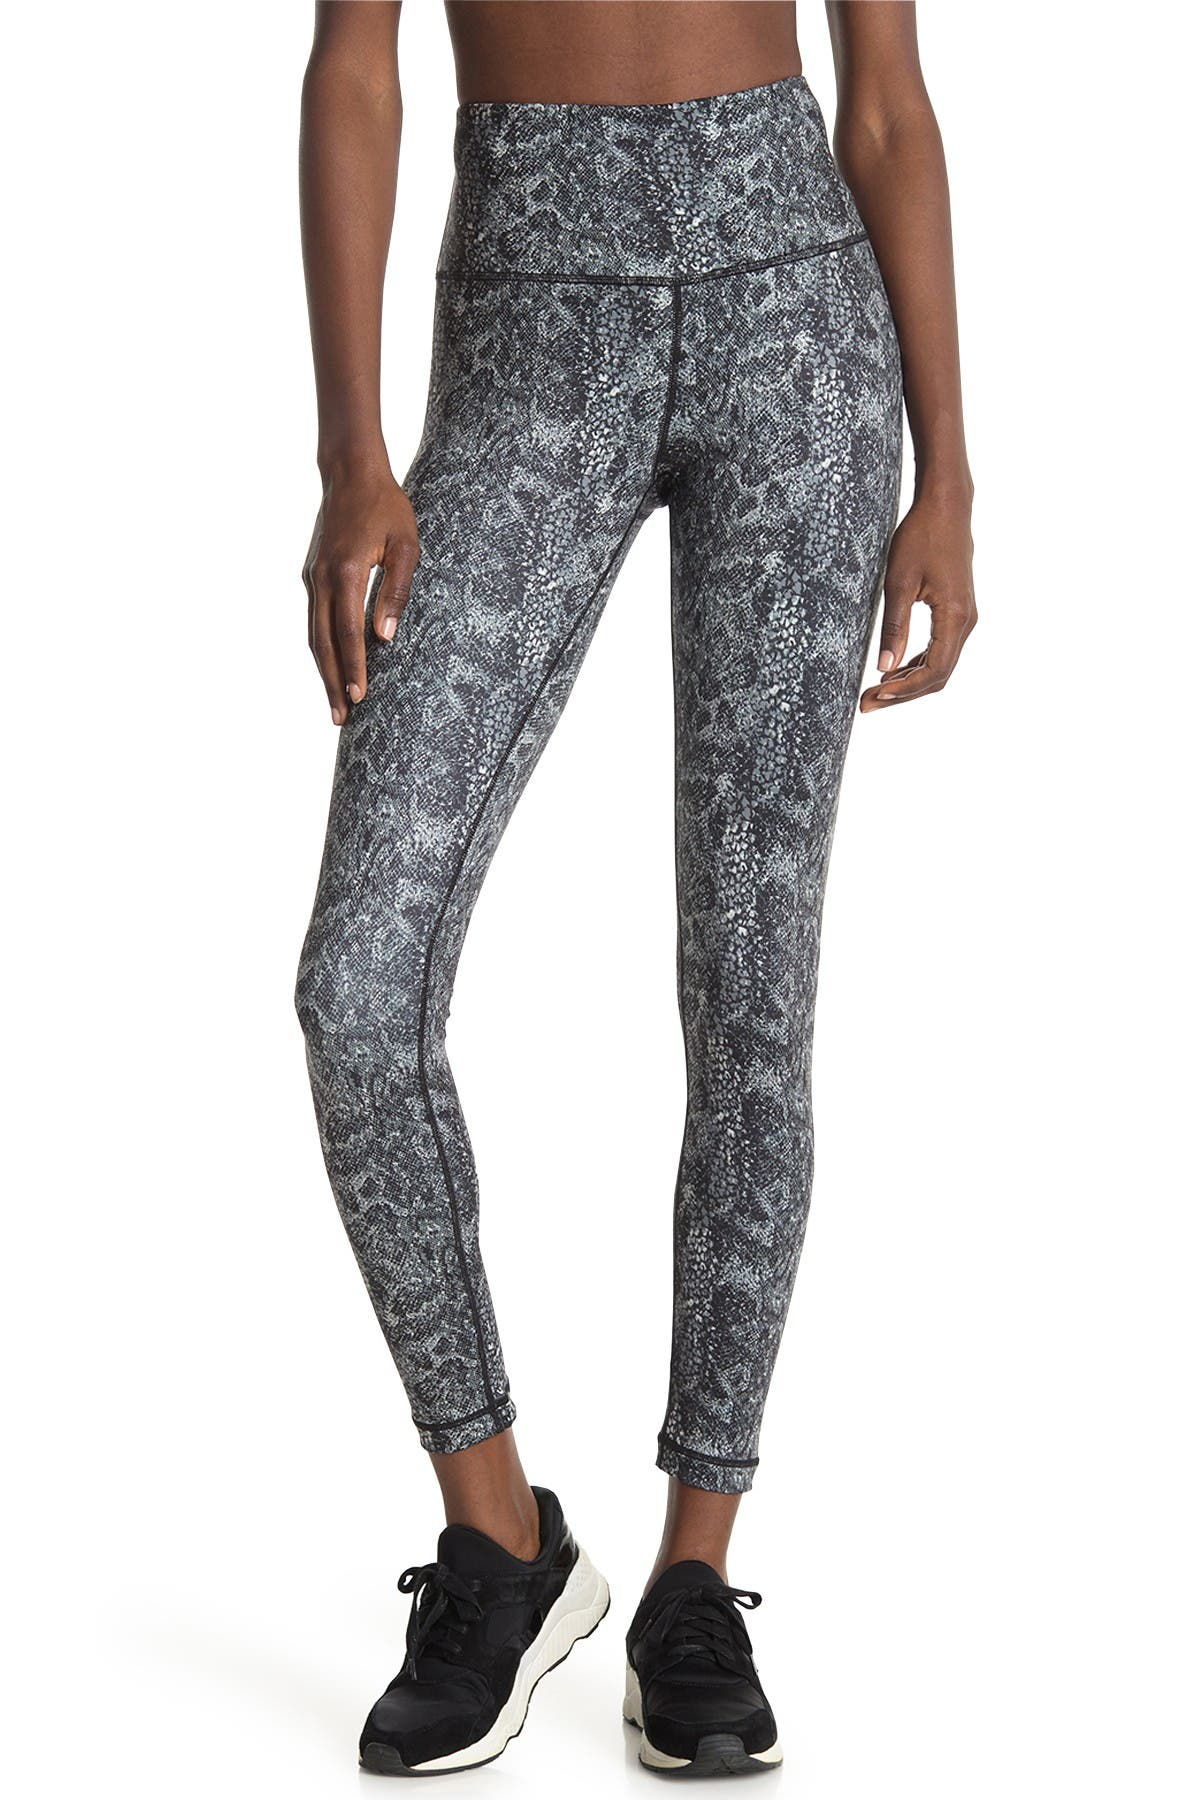 Image of Max Studio Earthday Snake Print High Rise Leggings